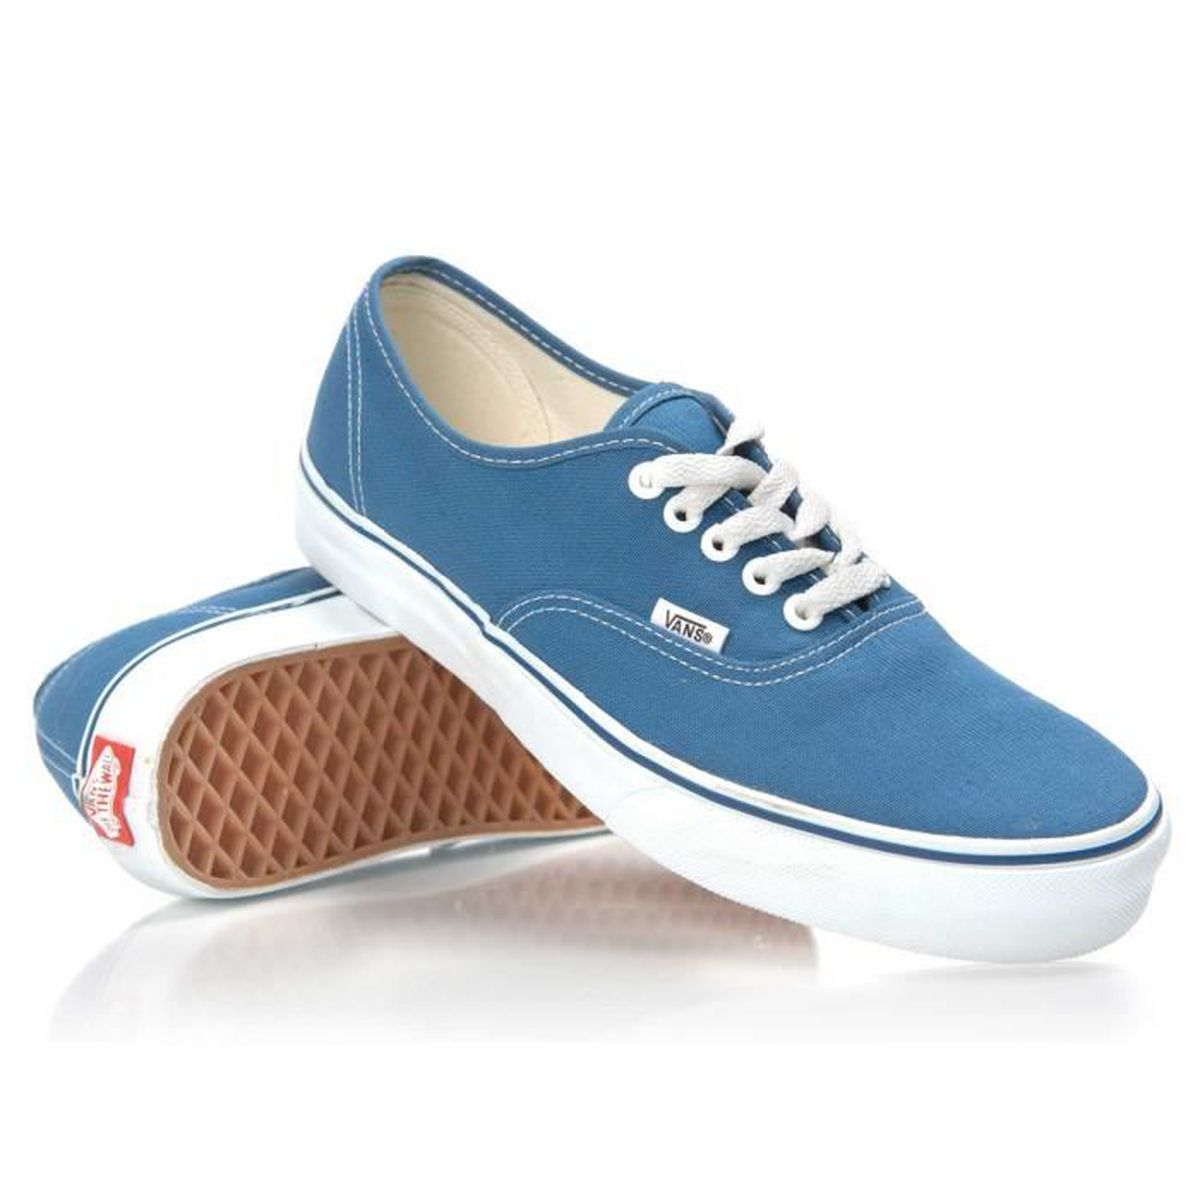 Chaussure Basse VANS Authentic Navy Homme Pointure 42,5 ...